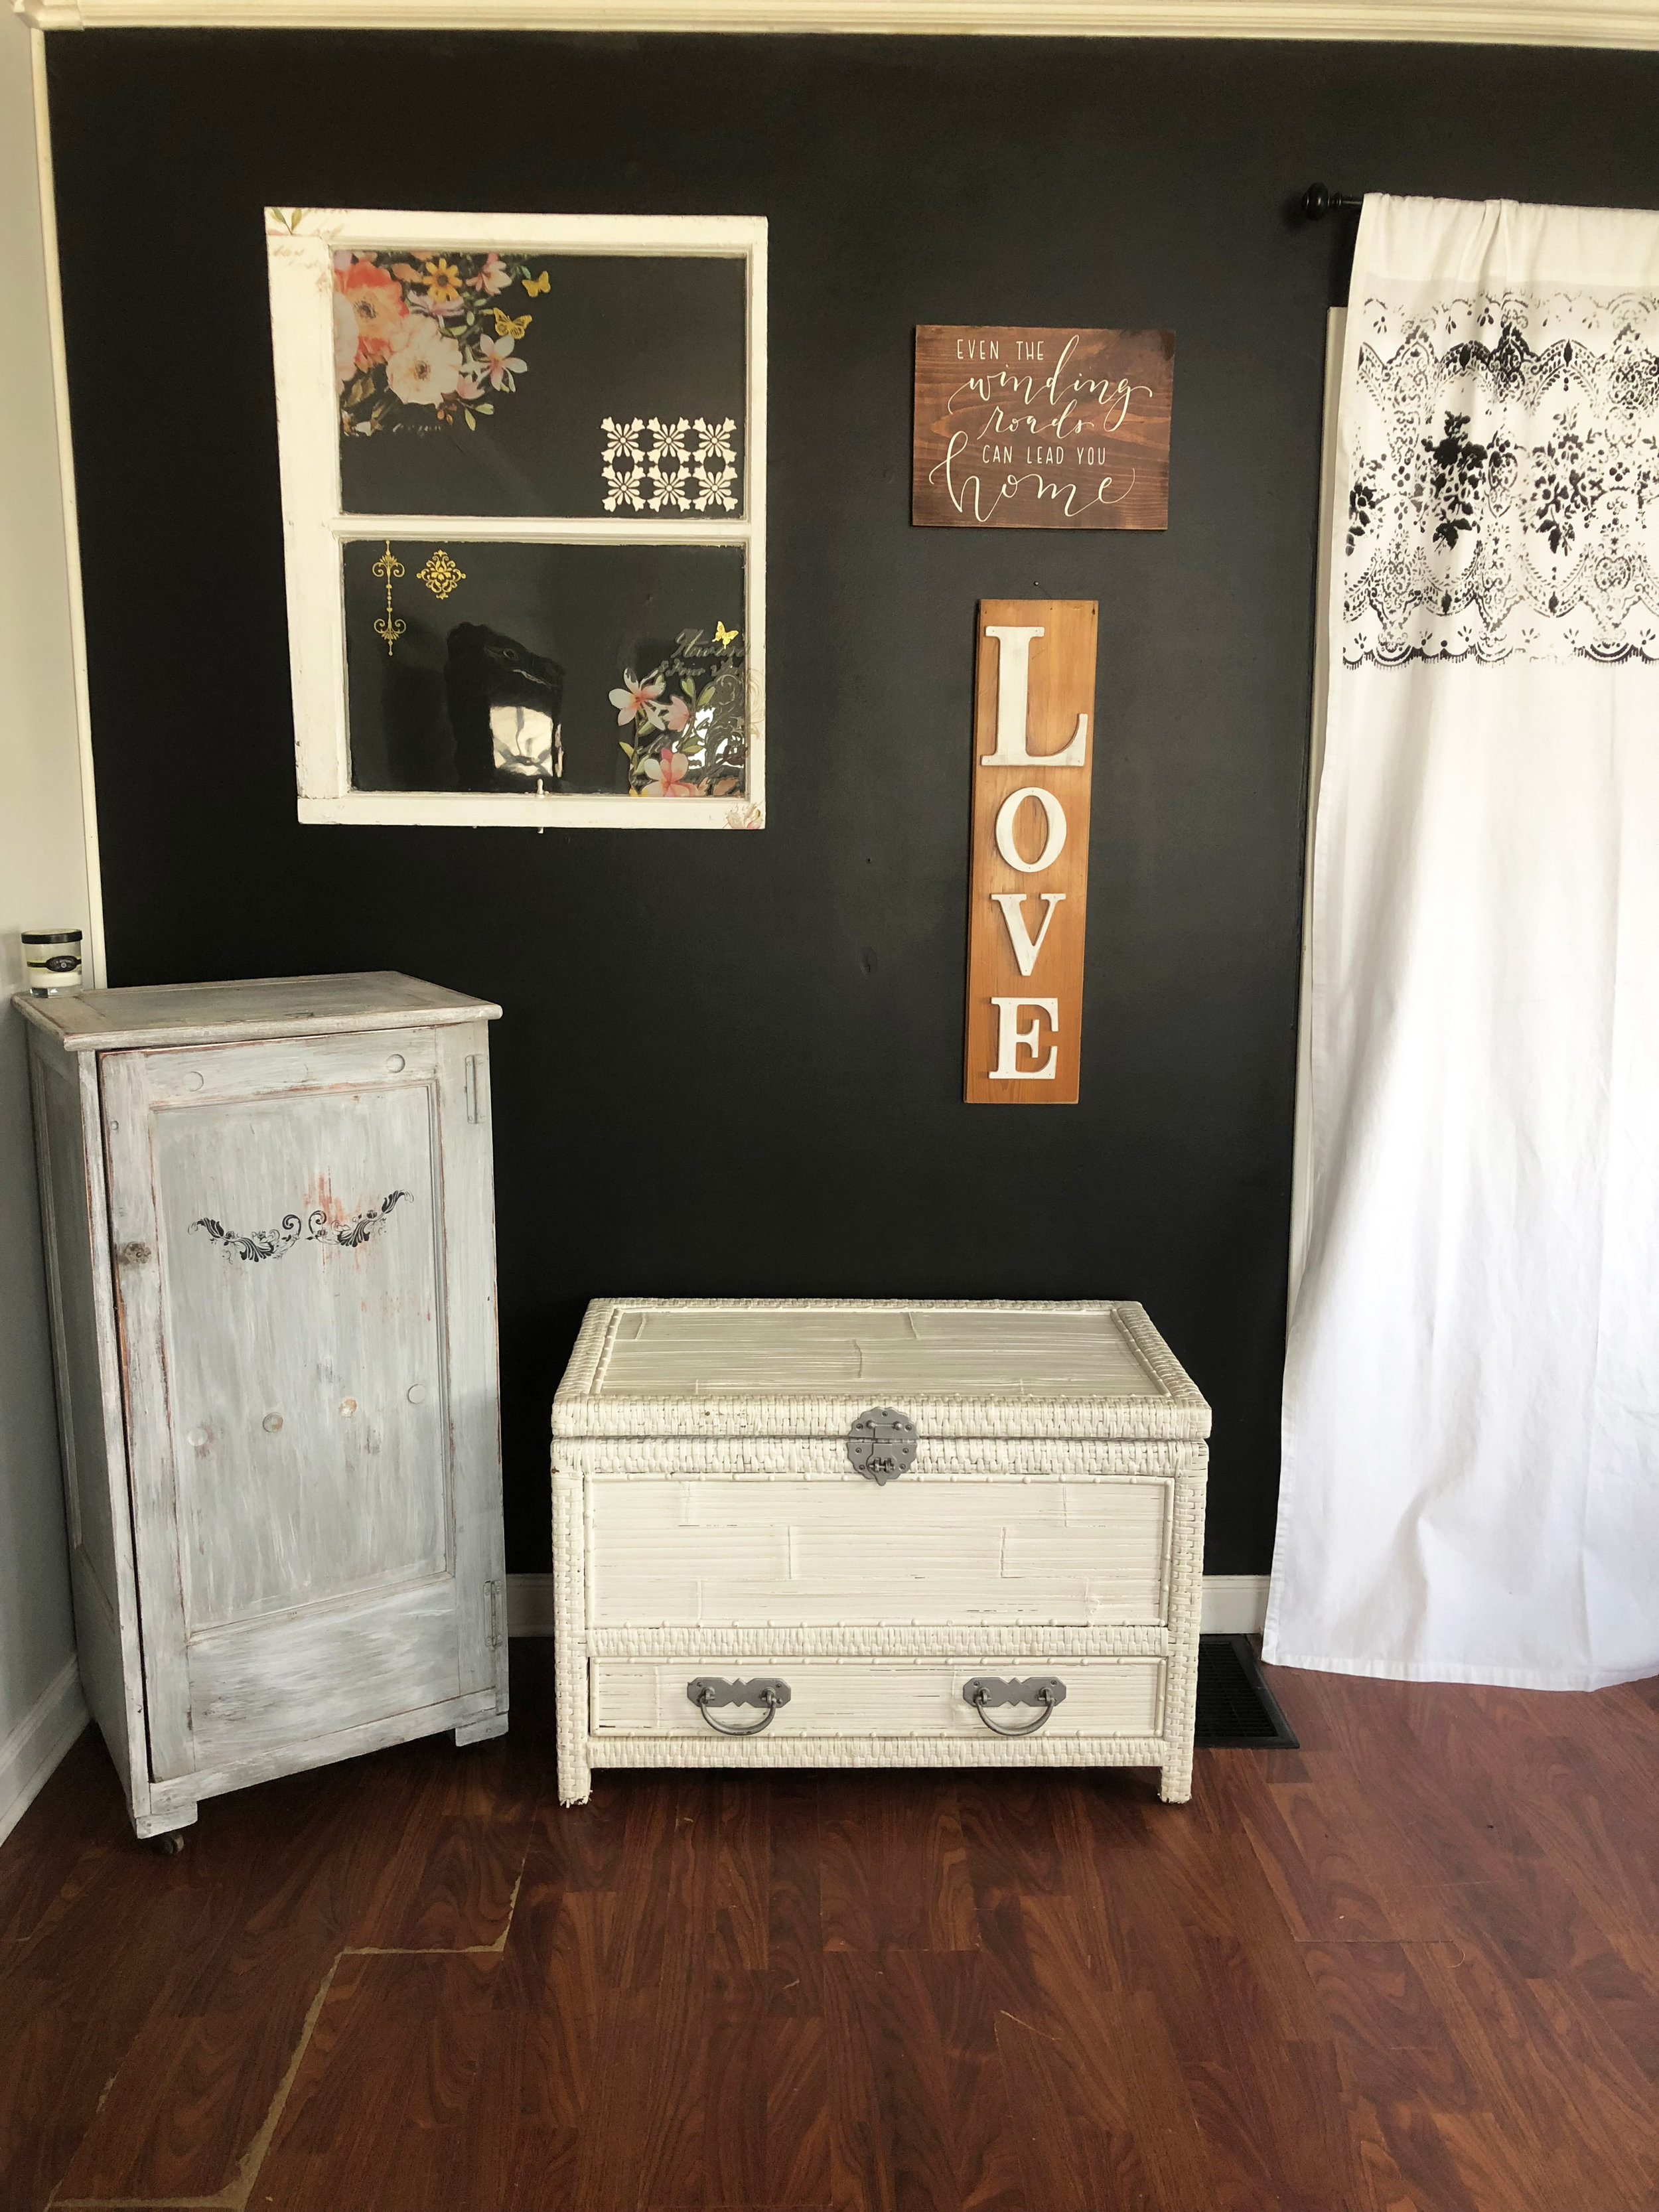 Create your own gallery wall by mixing and matching wall decor pieces like this. It adds character and allows you to personalize it any way you wish.